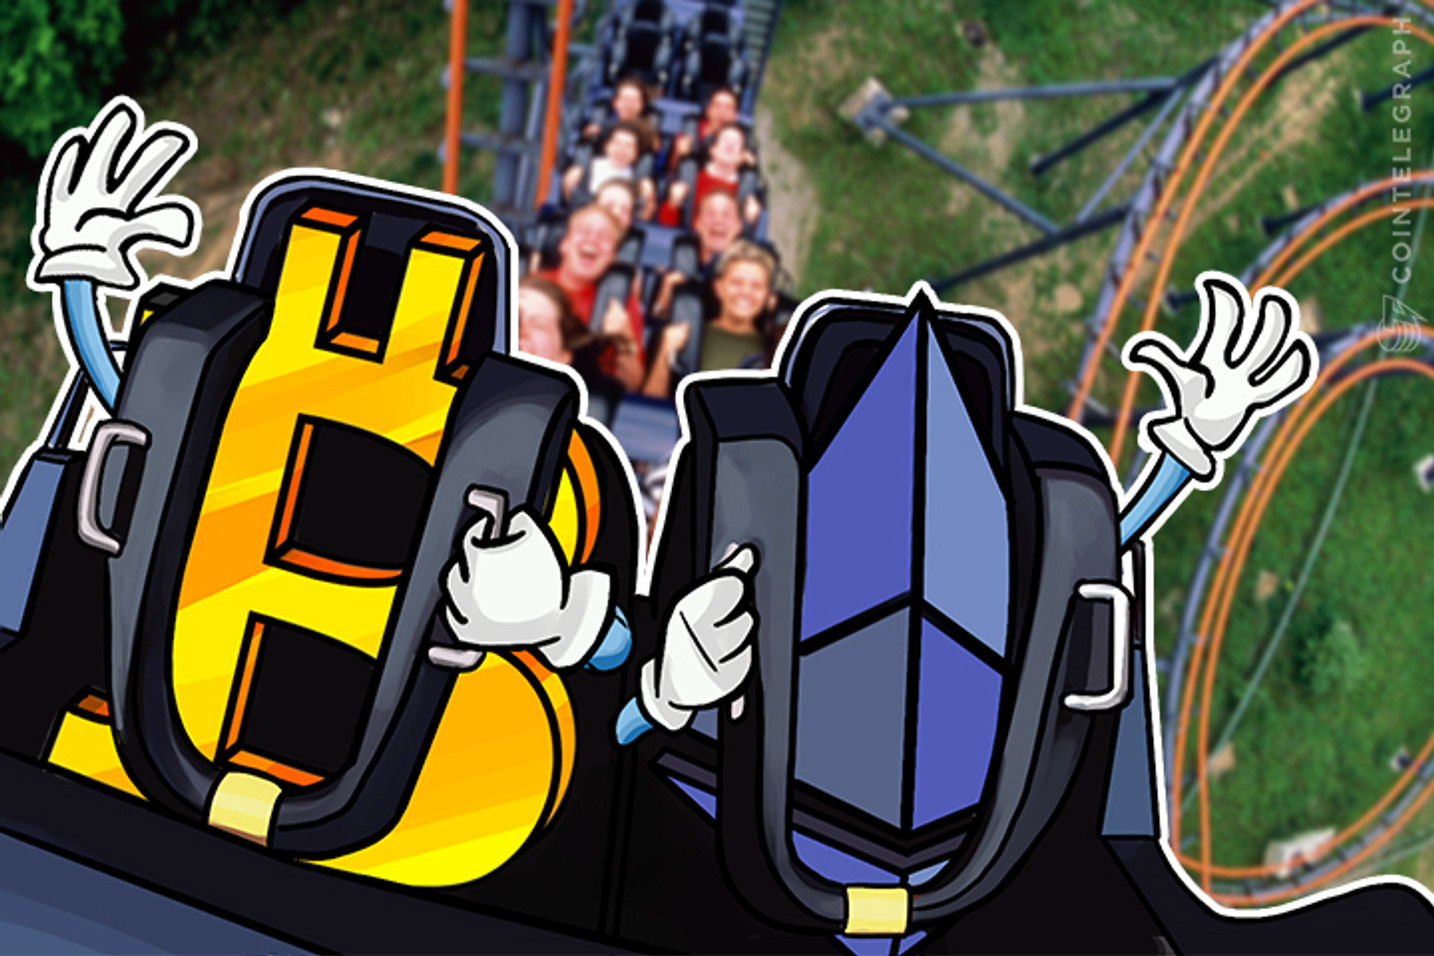 Bitcoin Price Swings Won't Hurt Its Asset Value Perspectives: Experts